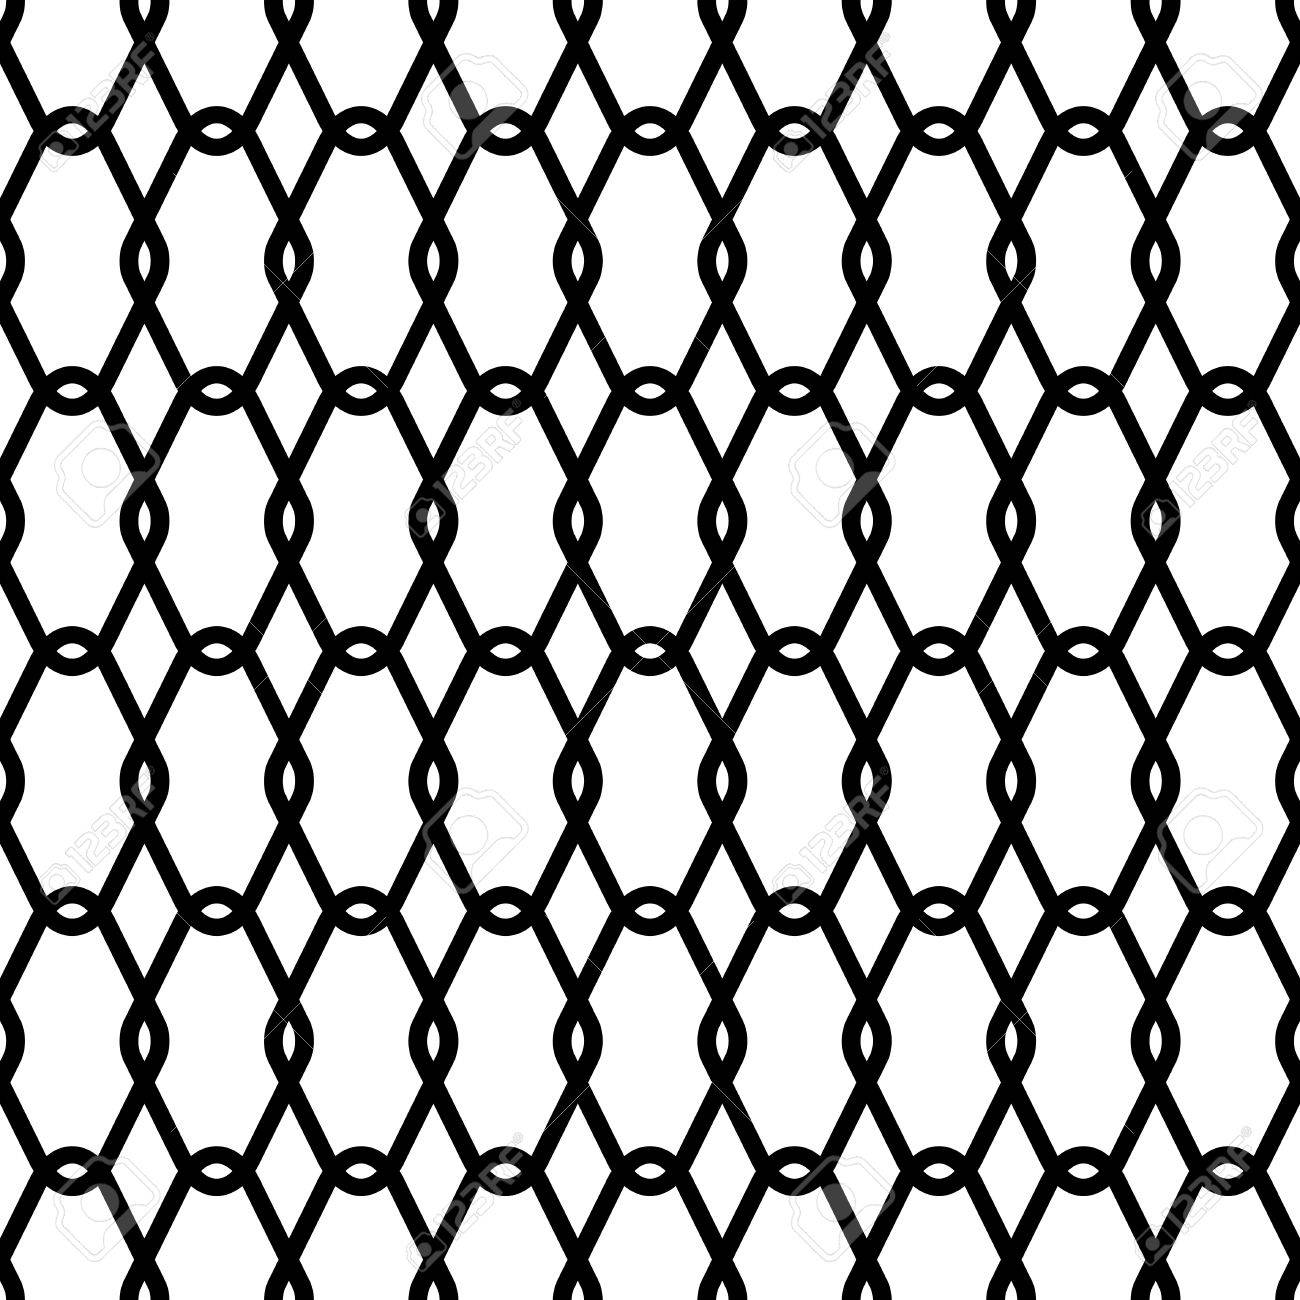 1300x1300 Steel Wire Mesh Seamless Background. Vector Illustration Royalty